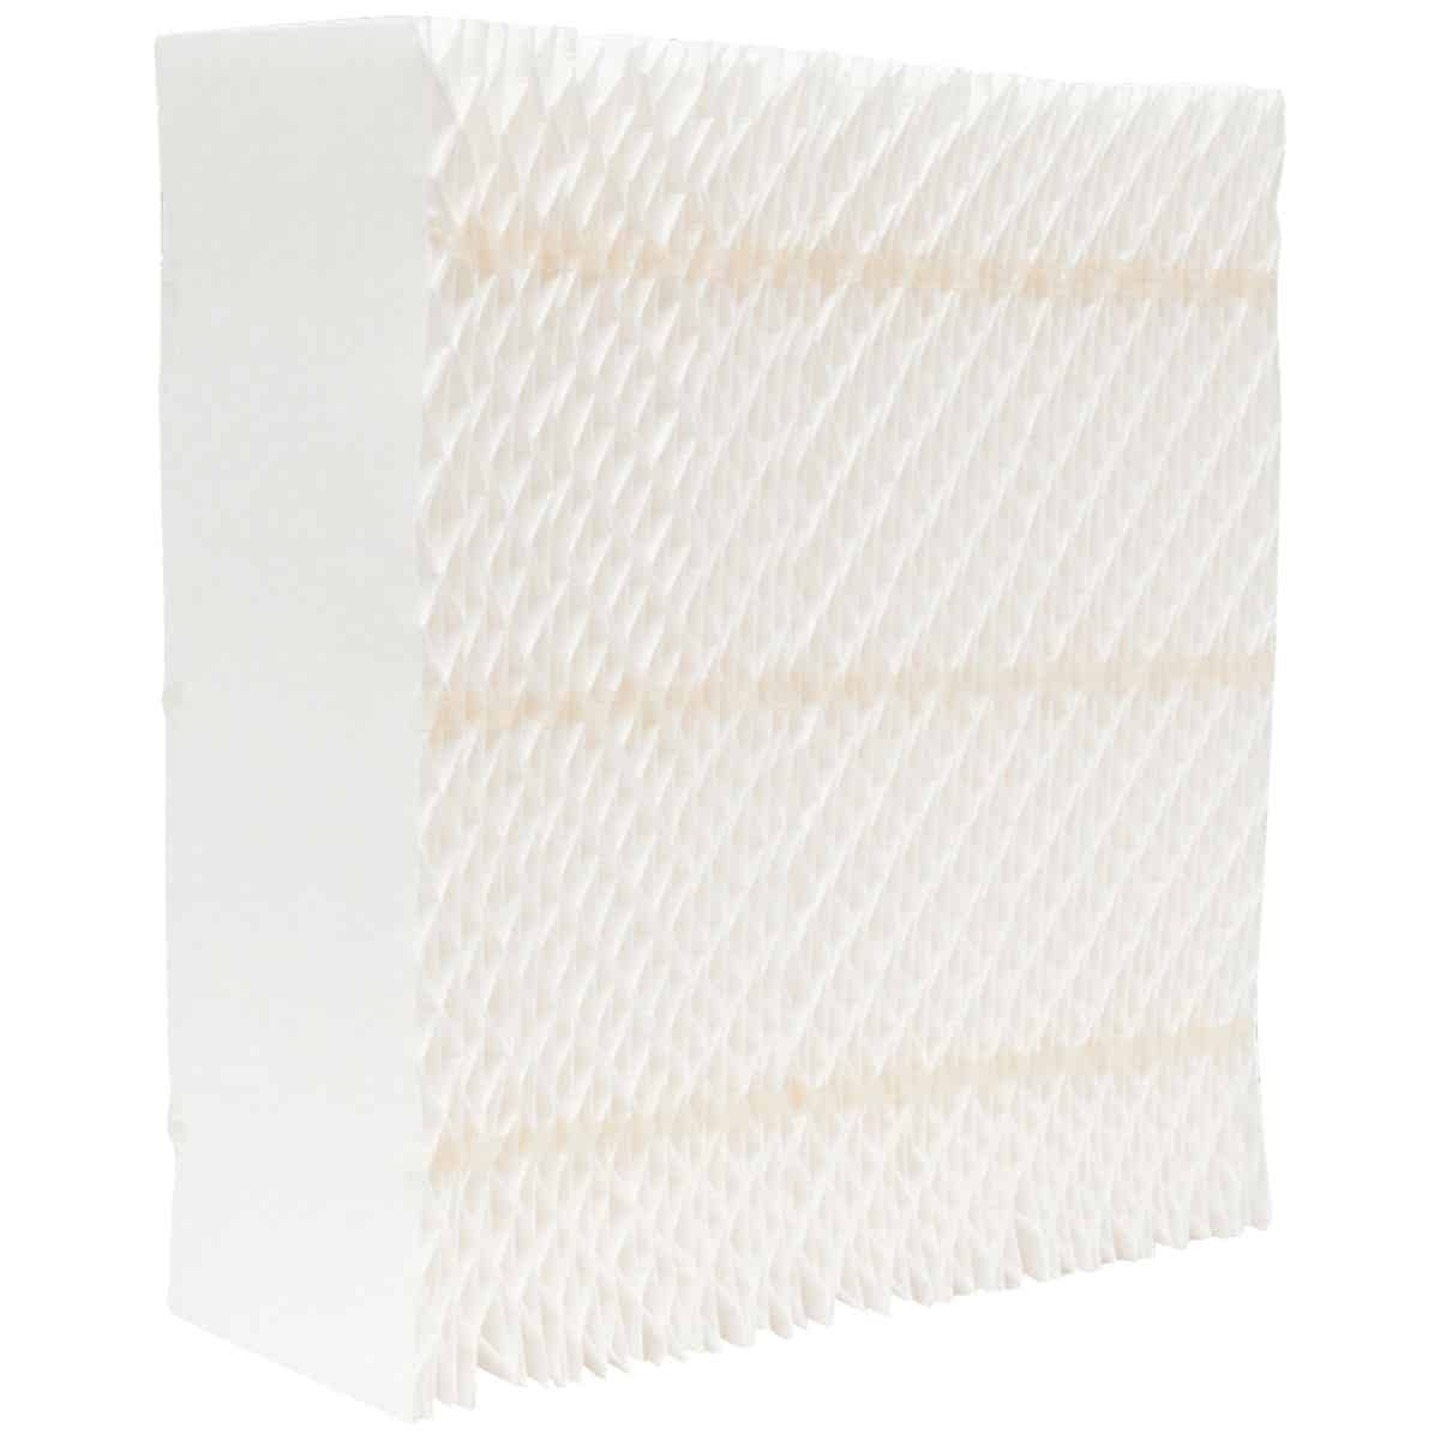 Essick Air 1043 Super Wick Humidifier Wick Filter Image 4